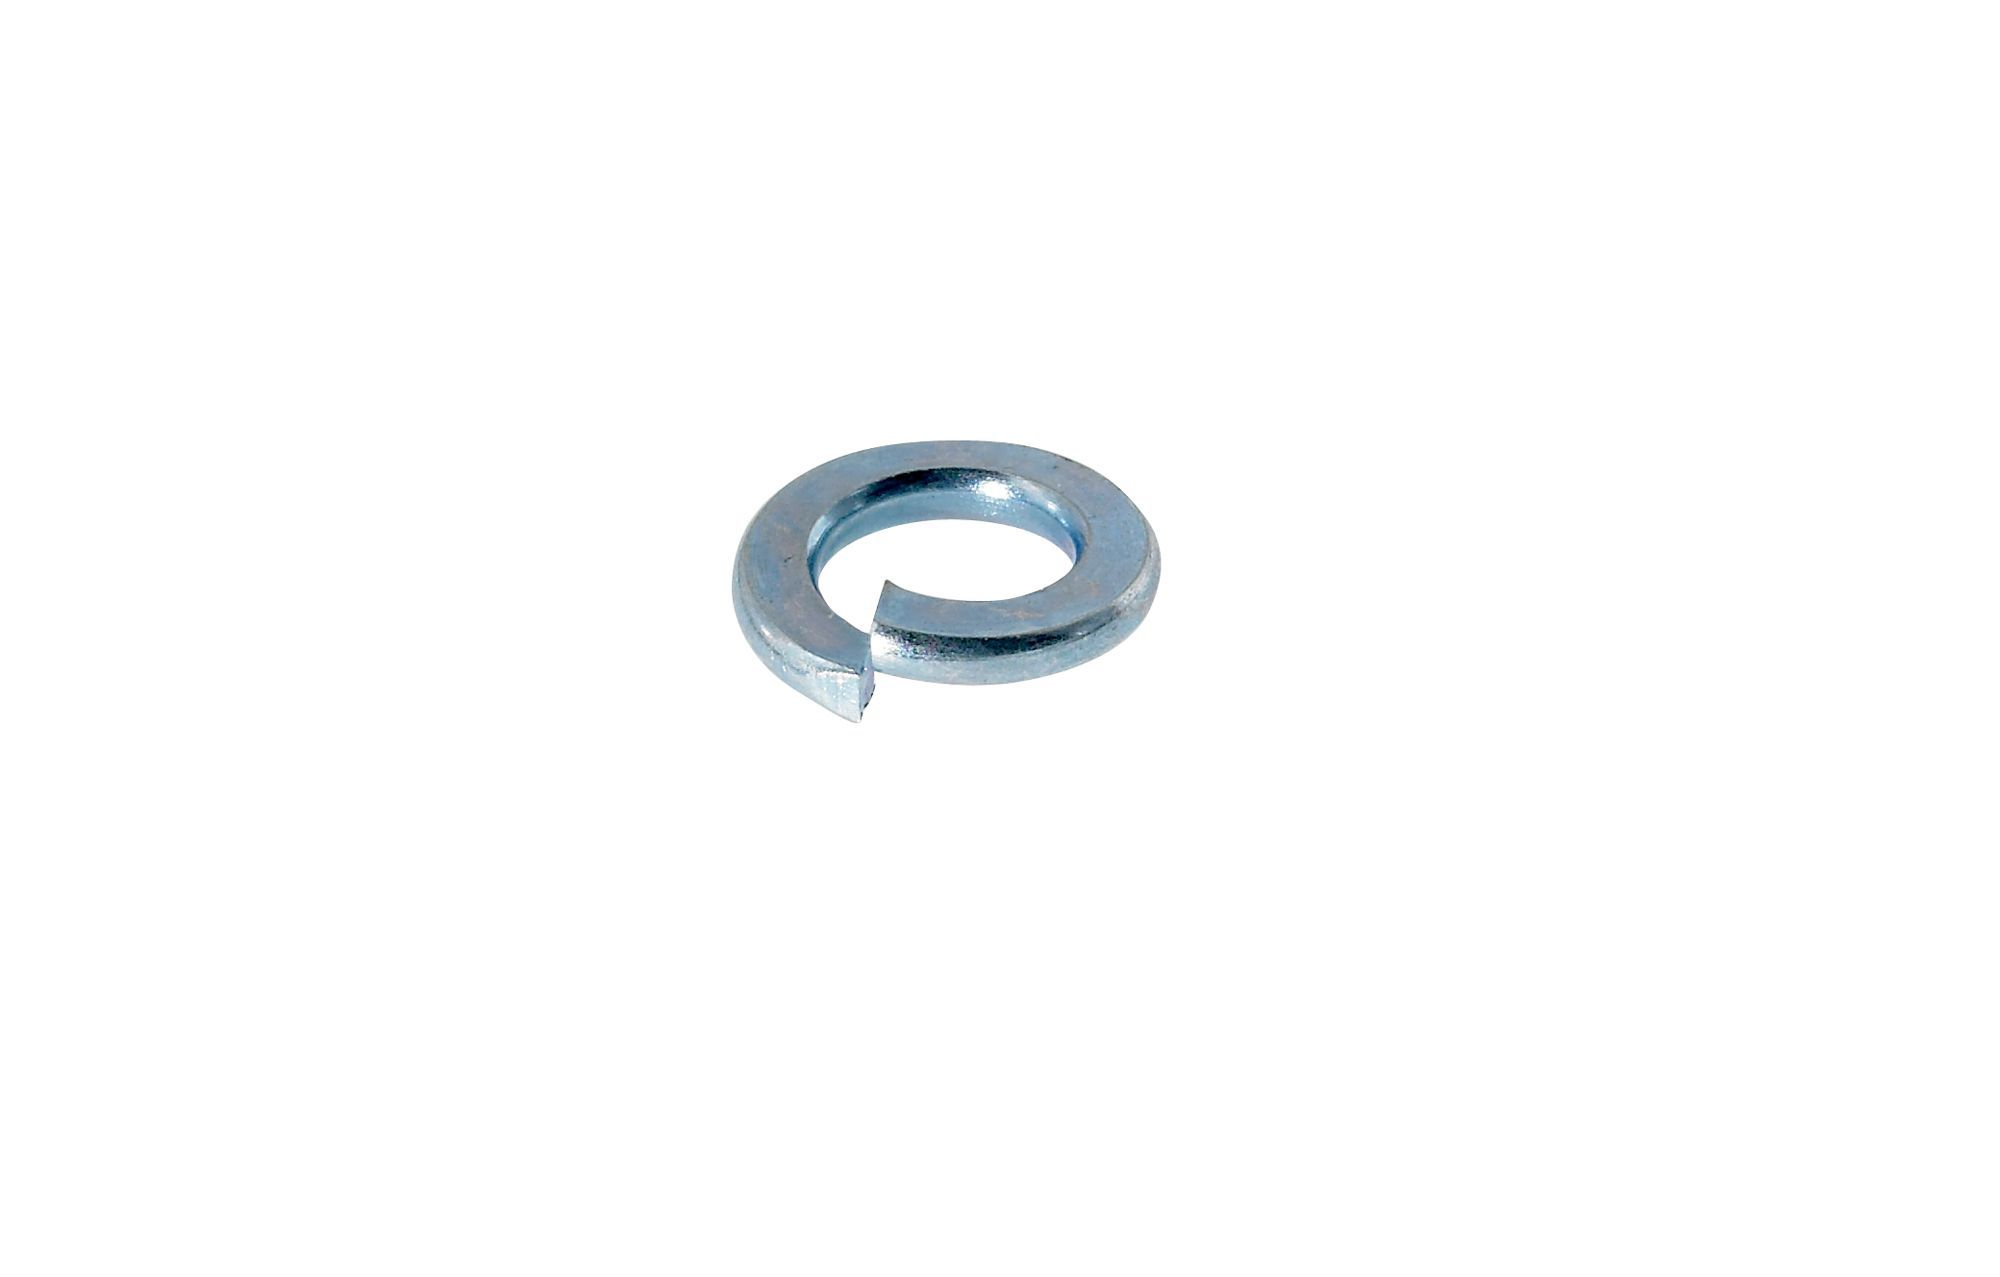 Avf M4 Steel Spring Washer, Pack Of 25